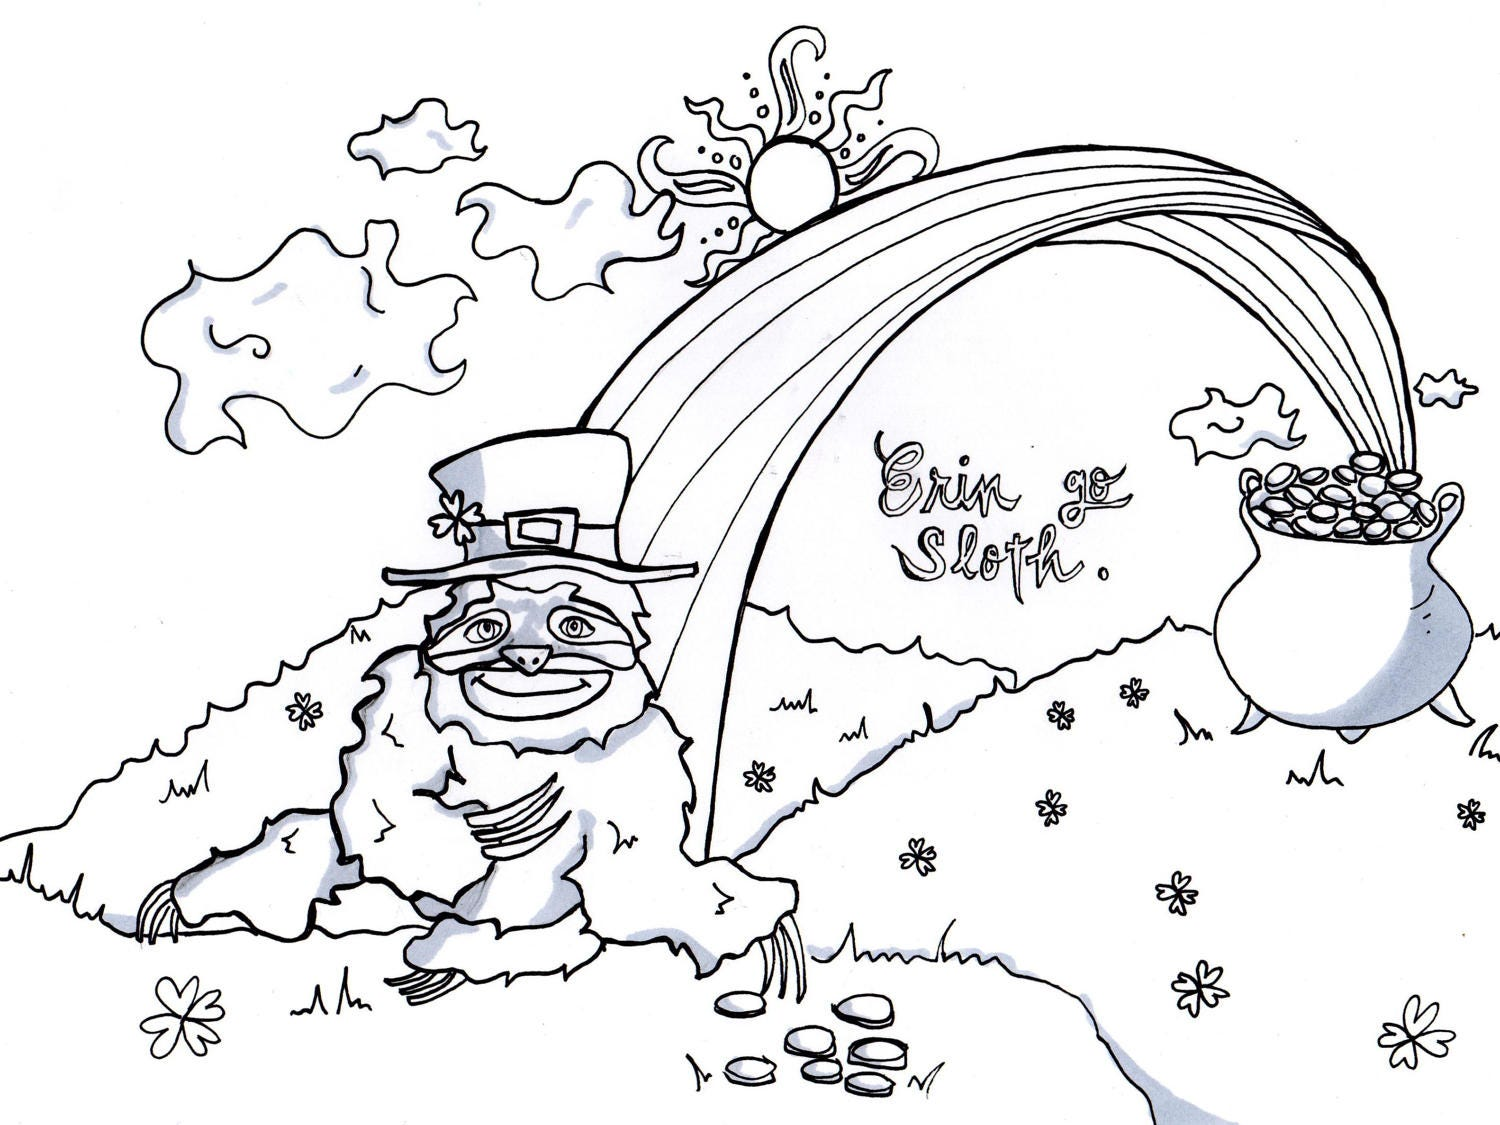 Co coloring book page leprechaun - St Patrick S Day Coloring Sloth Coloring Adult Coloring Kids Coloring Page Leprechaun Shamrock Four Leaf Clover Coloring Pot Of Gold